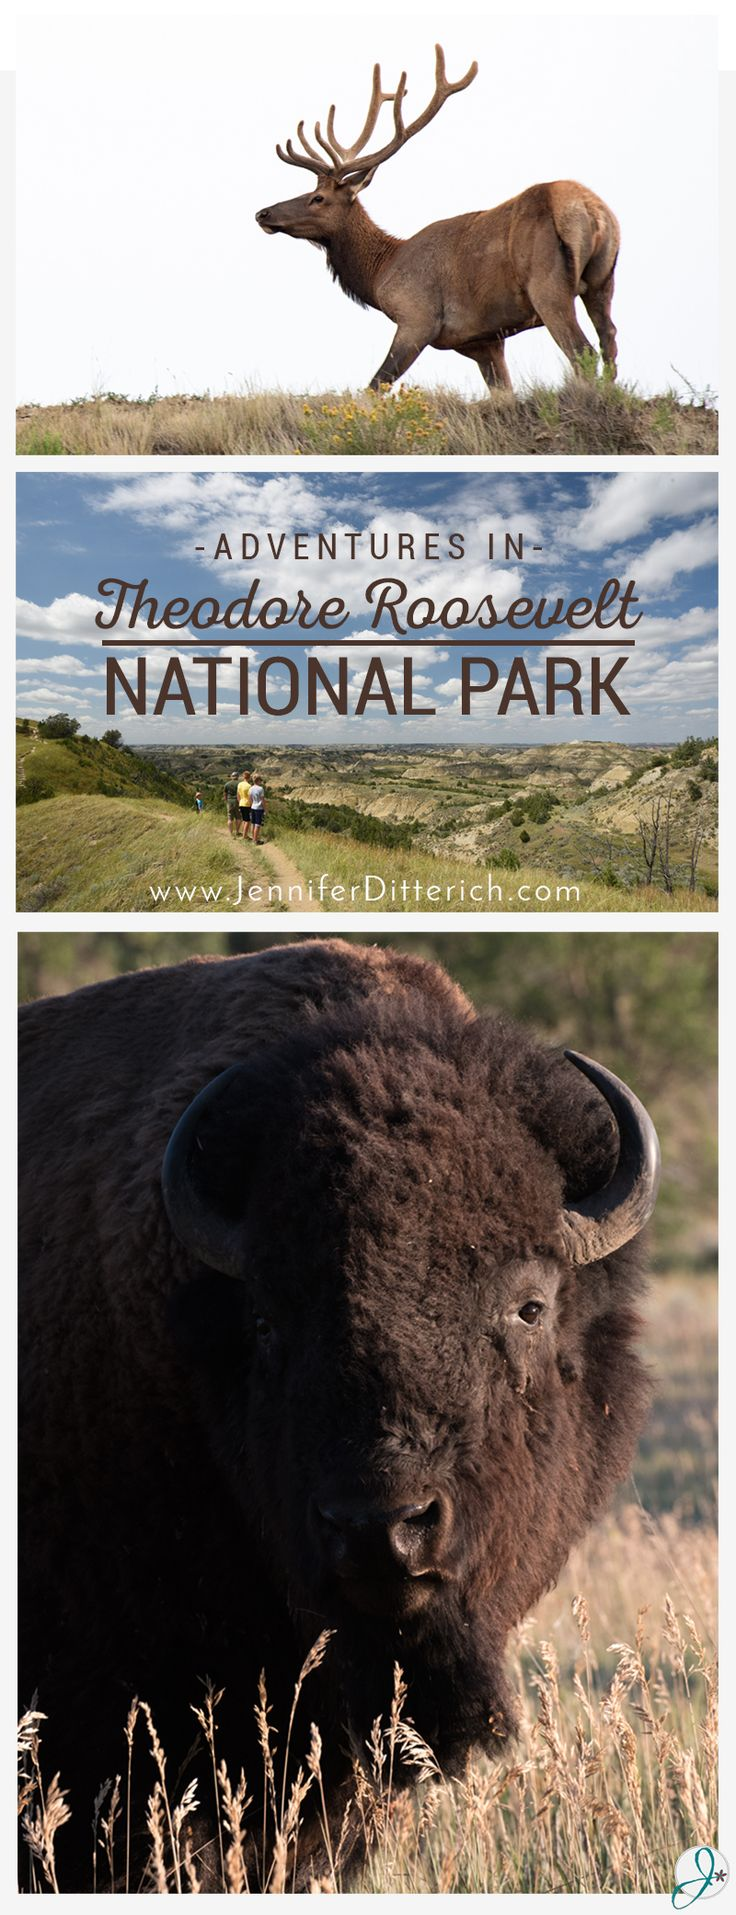 This month we are celebrating the 100th anniversary of our National Parks system. In honor of the event, I'm bringing you photos and stories from my recent trip to Theodore Roosevelt National Park. You'll be amazed at the land, wildlife and history the park has to offer...